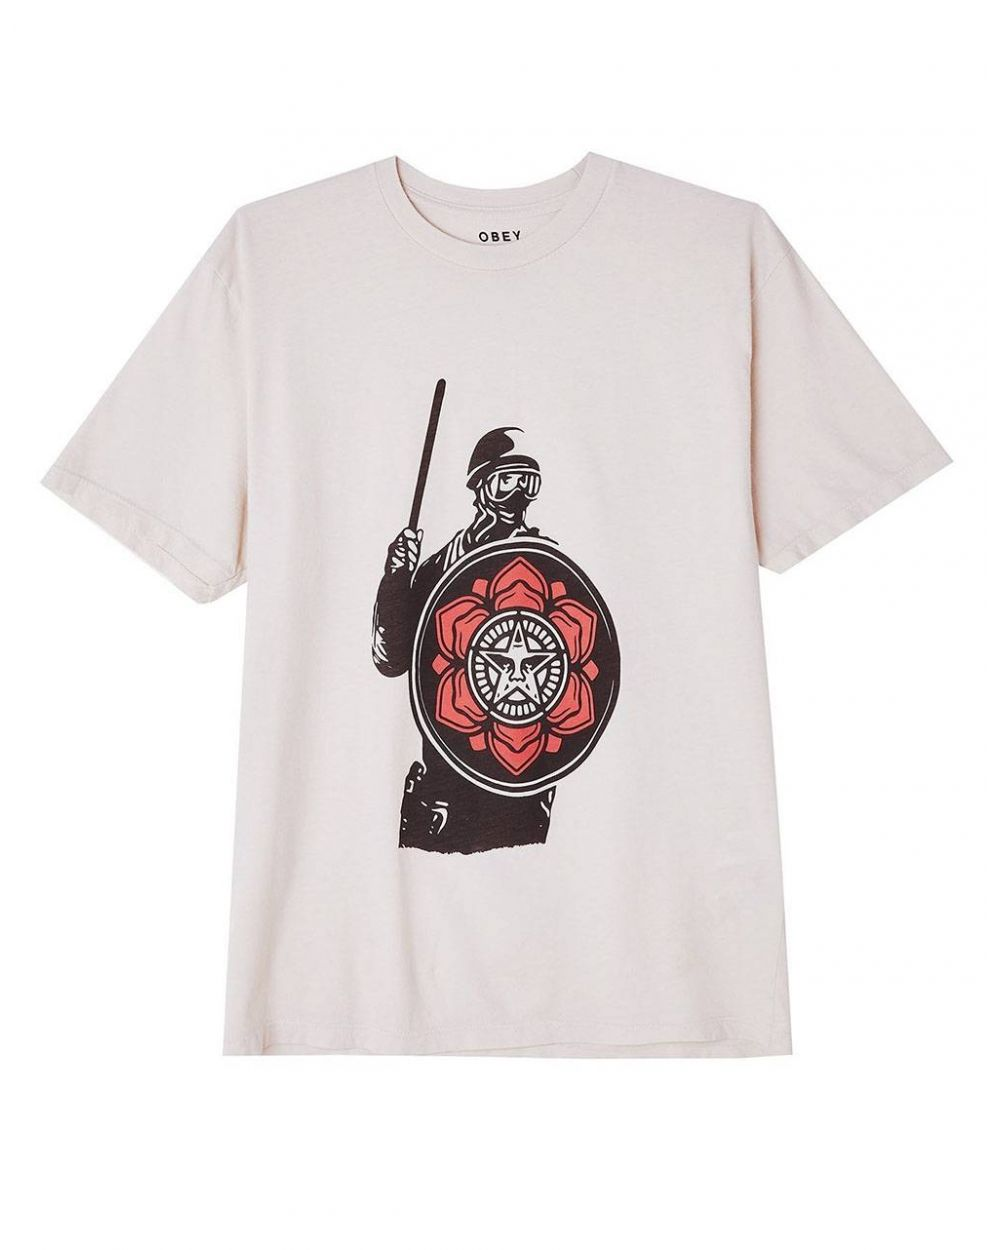 Obey Woman riot cop peace shield organic tee - white obey T-shirt 45,08€